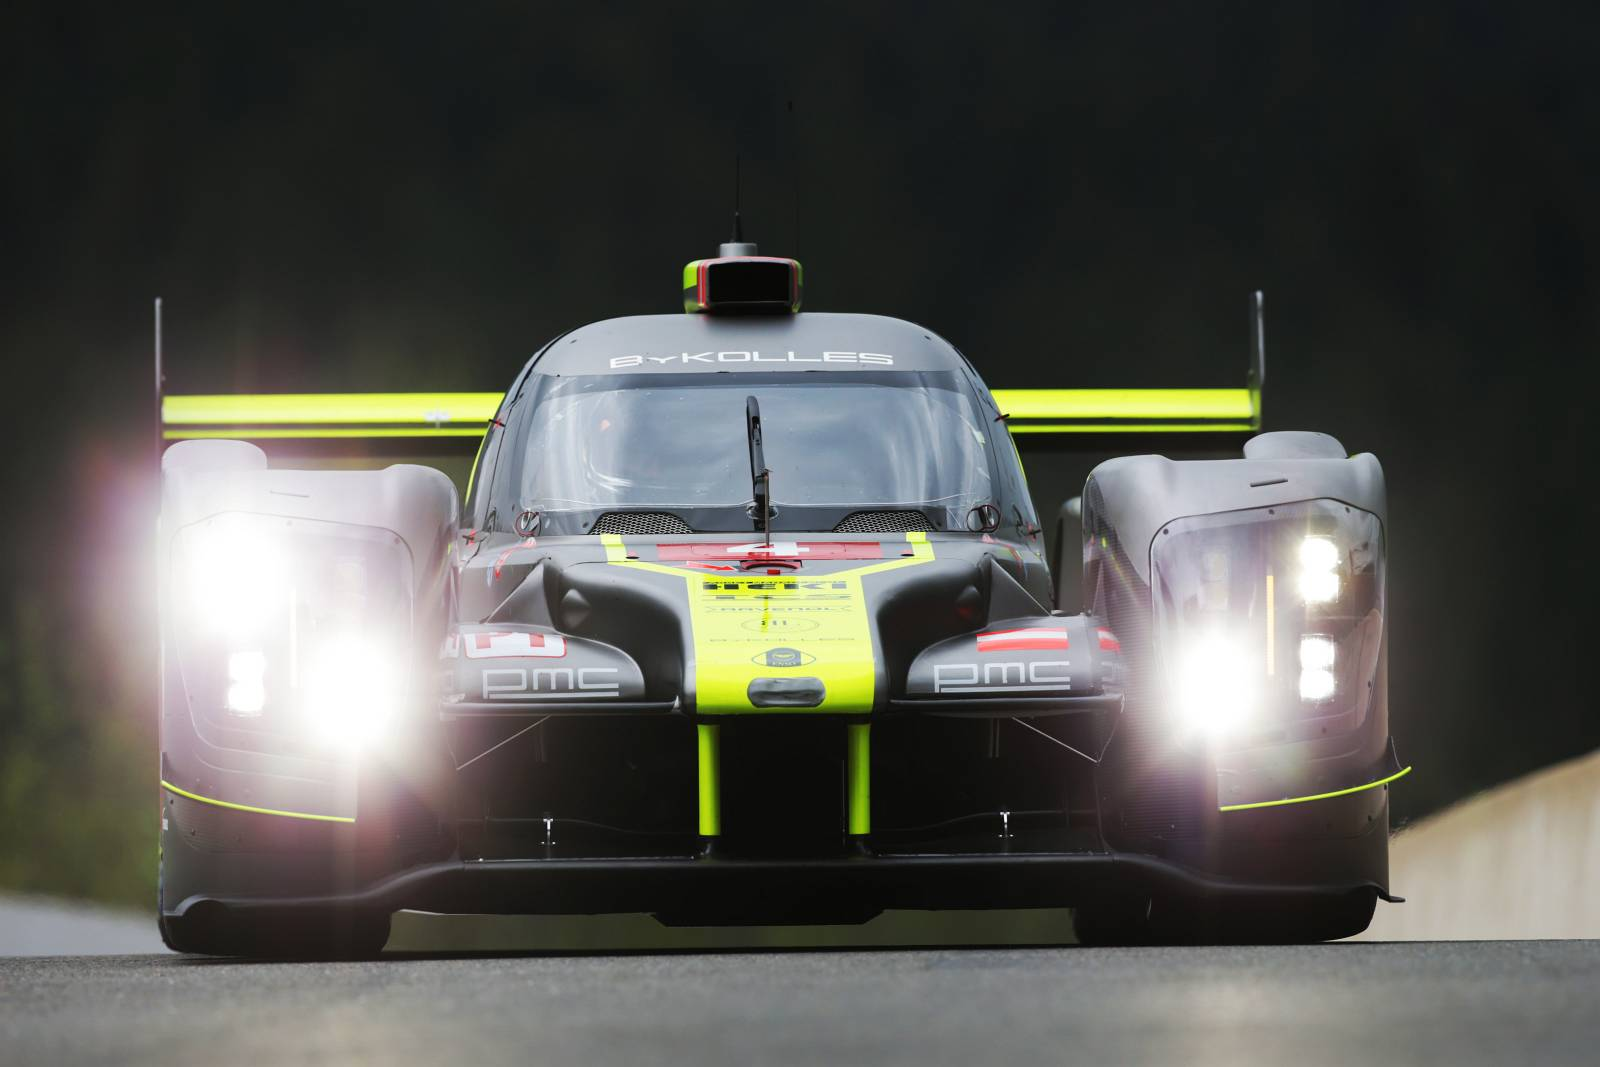 byKOLLES-racing-WEC-SPA-2017-45